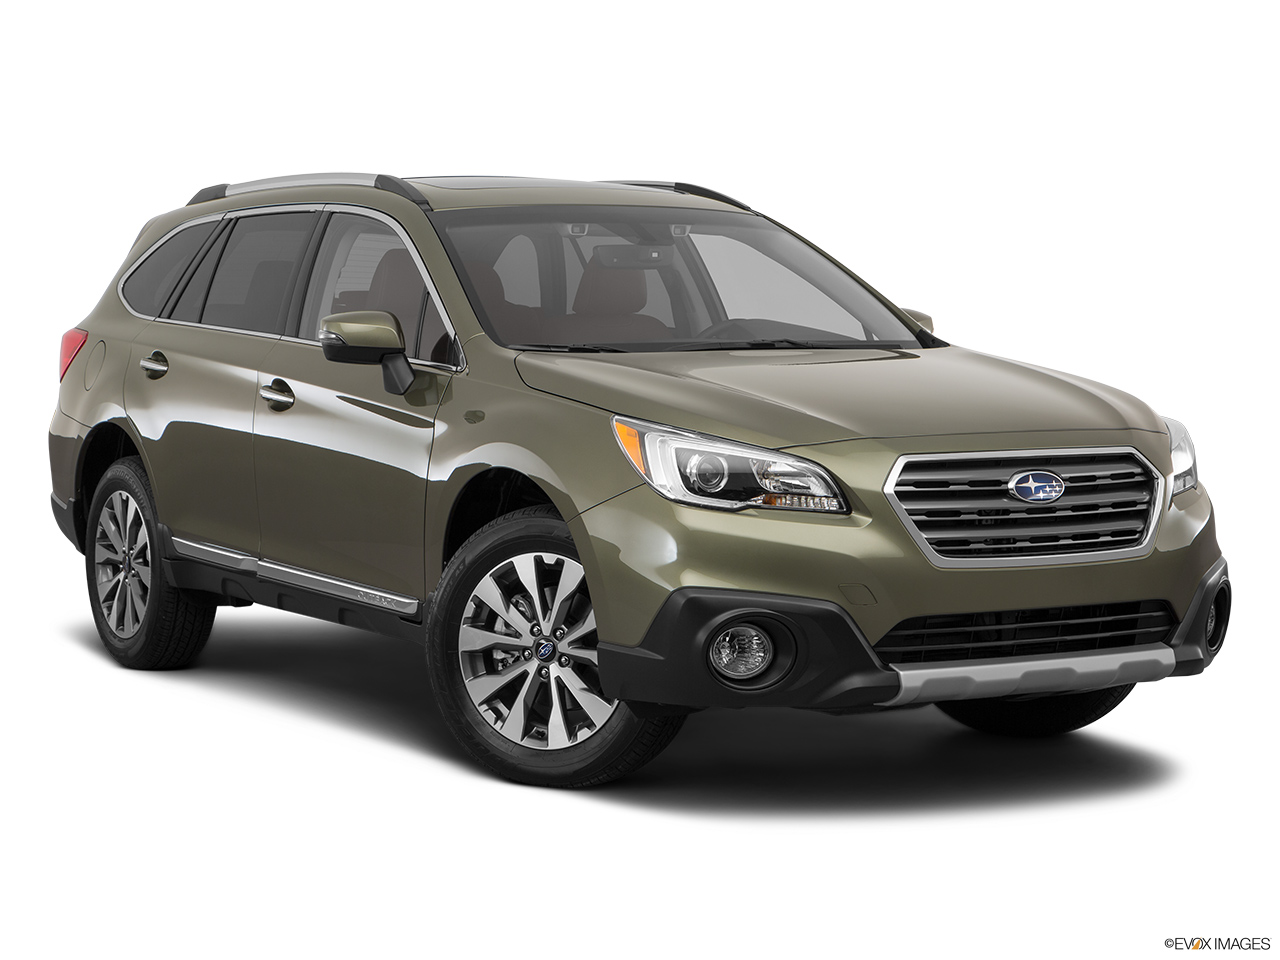 subaru outback 2017 3 6l in bahrain new car prices specs reviews photos yallamotor. Black Bedroom Furniture Sets. Home Design Ideas